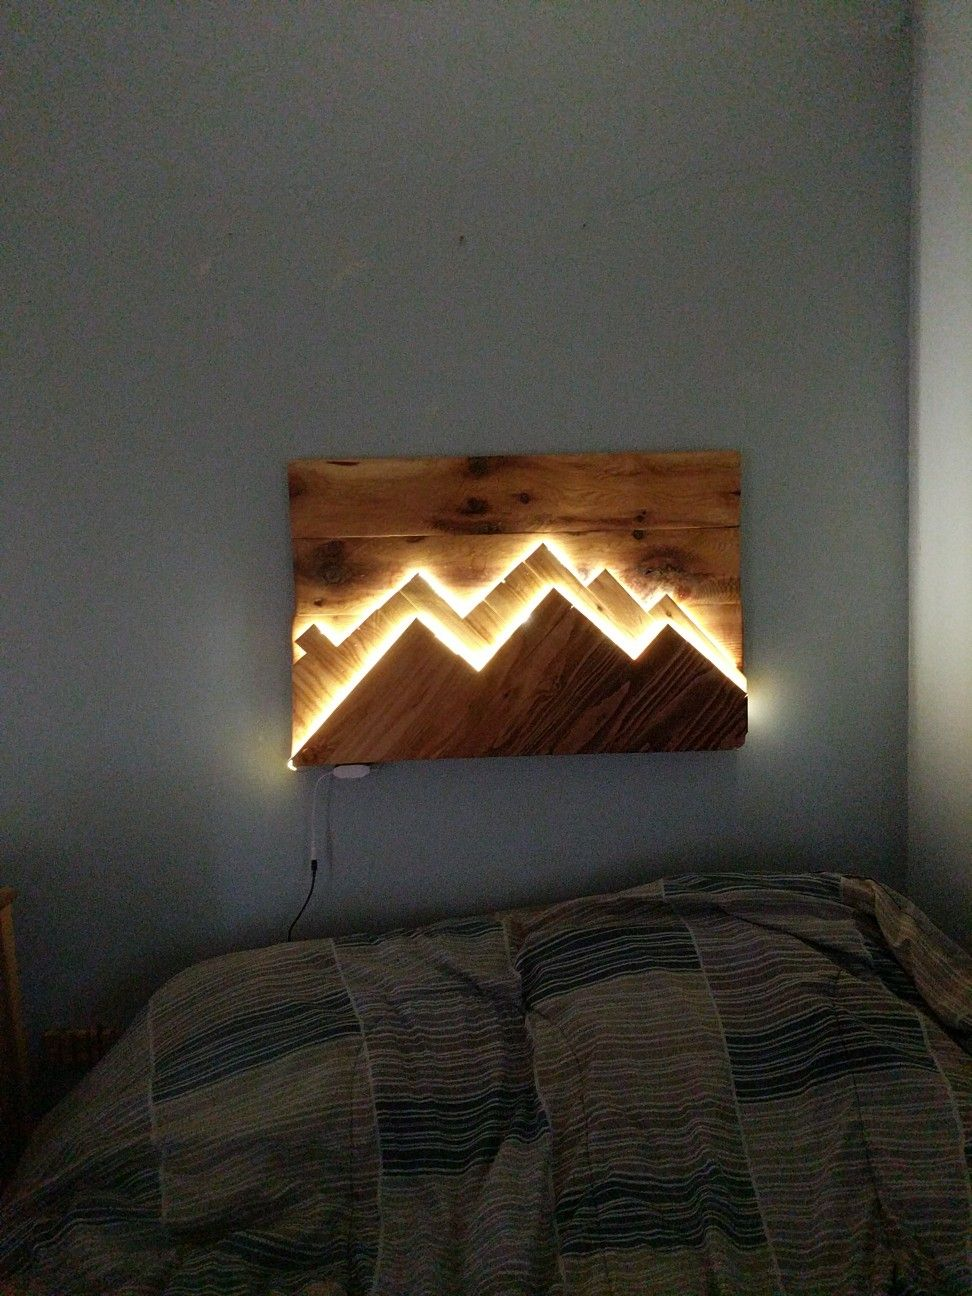 Lighted Mountains Wall Art Contact Me For Details On How